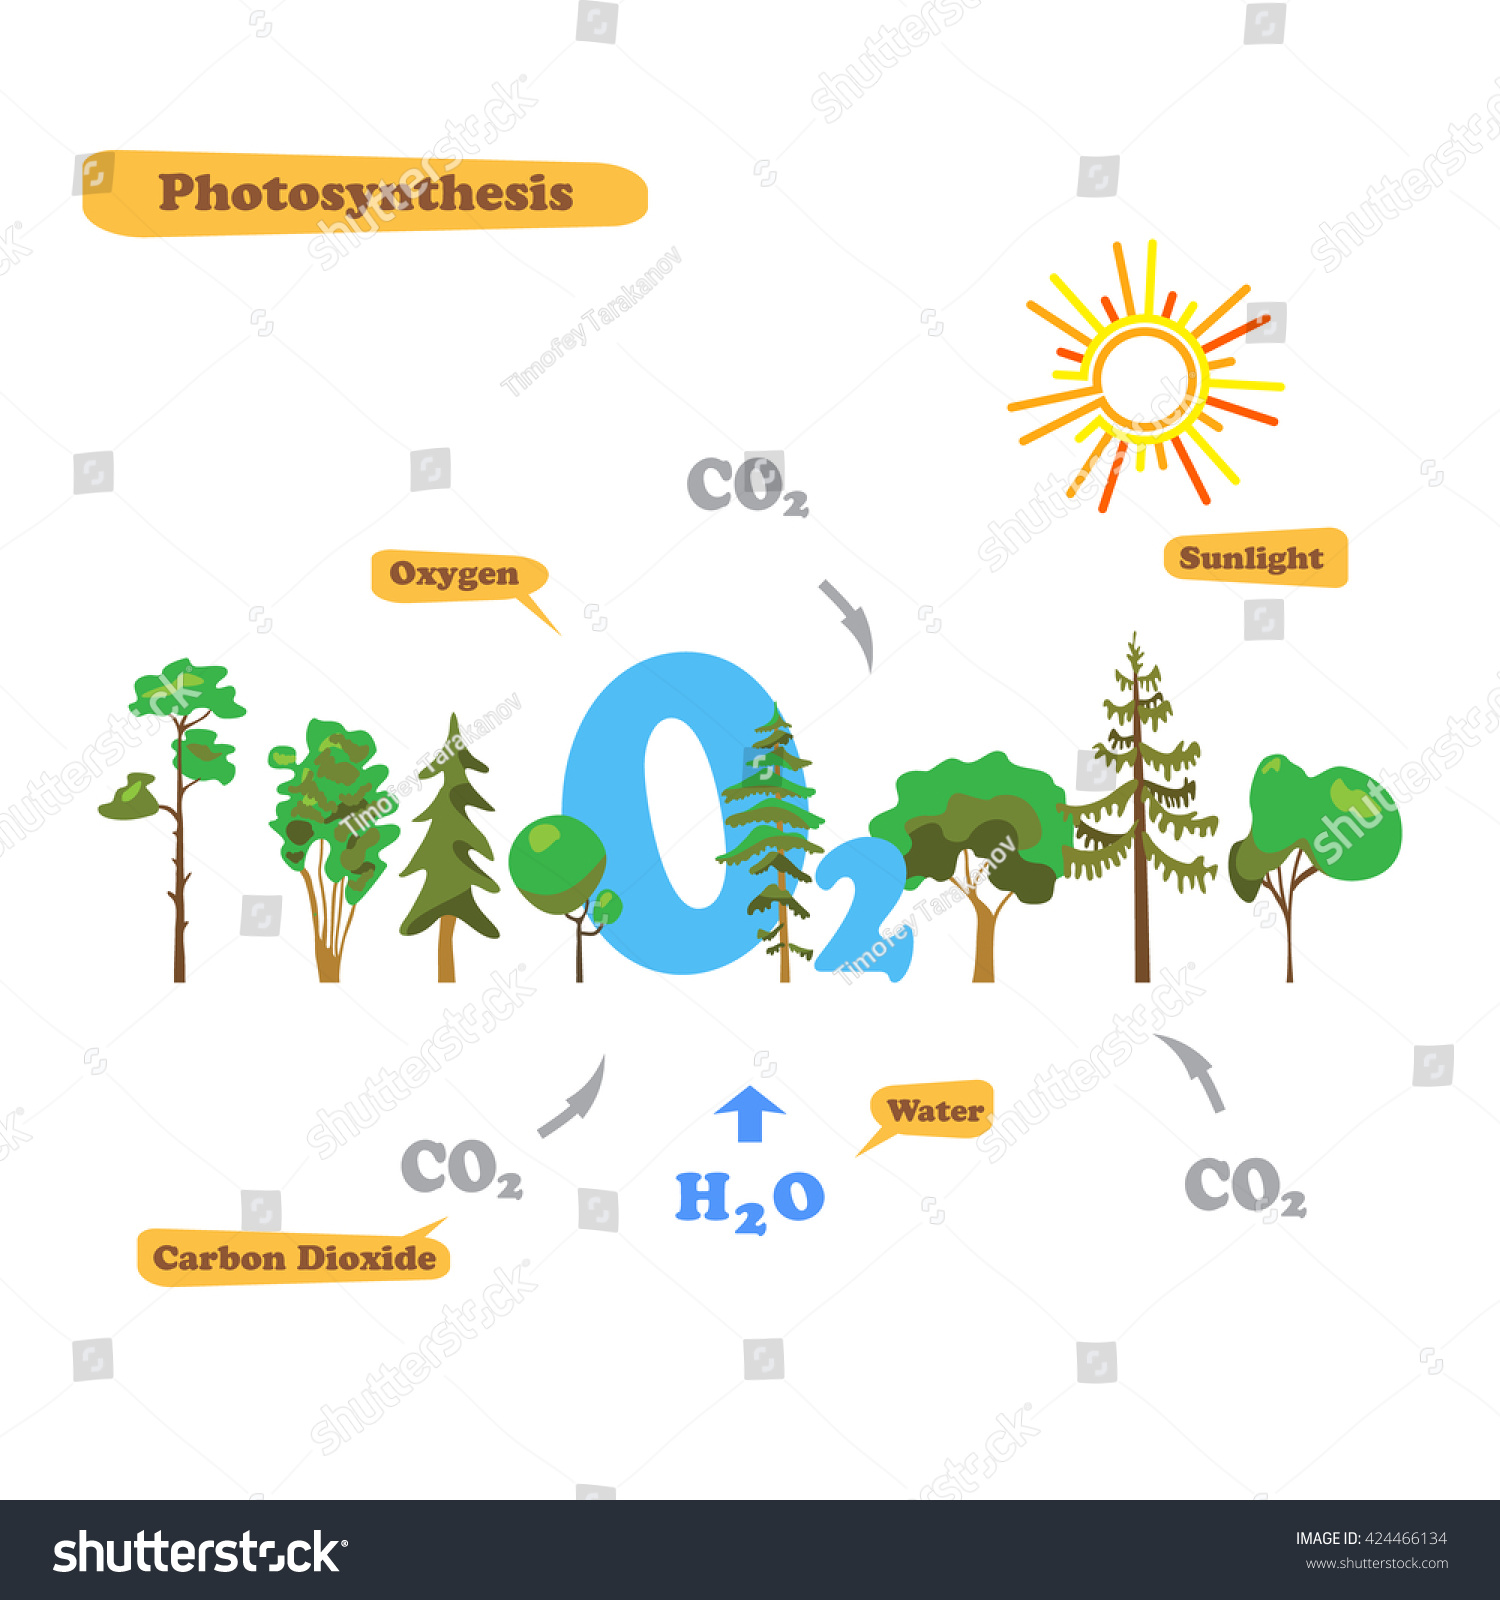 Illustration photosynthesis infographics photosynthesis process illustration of photosynthesis infographics of the photosynthesis process infographics in flat style pooptronica Choice Image